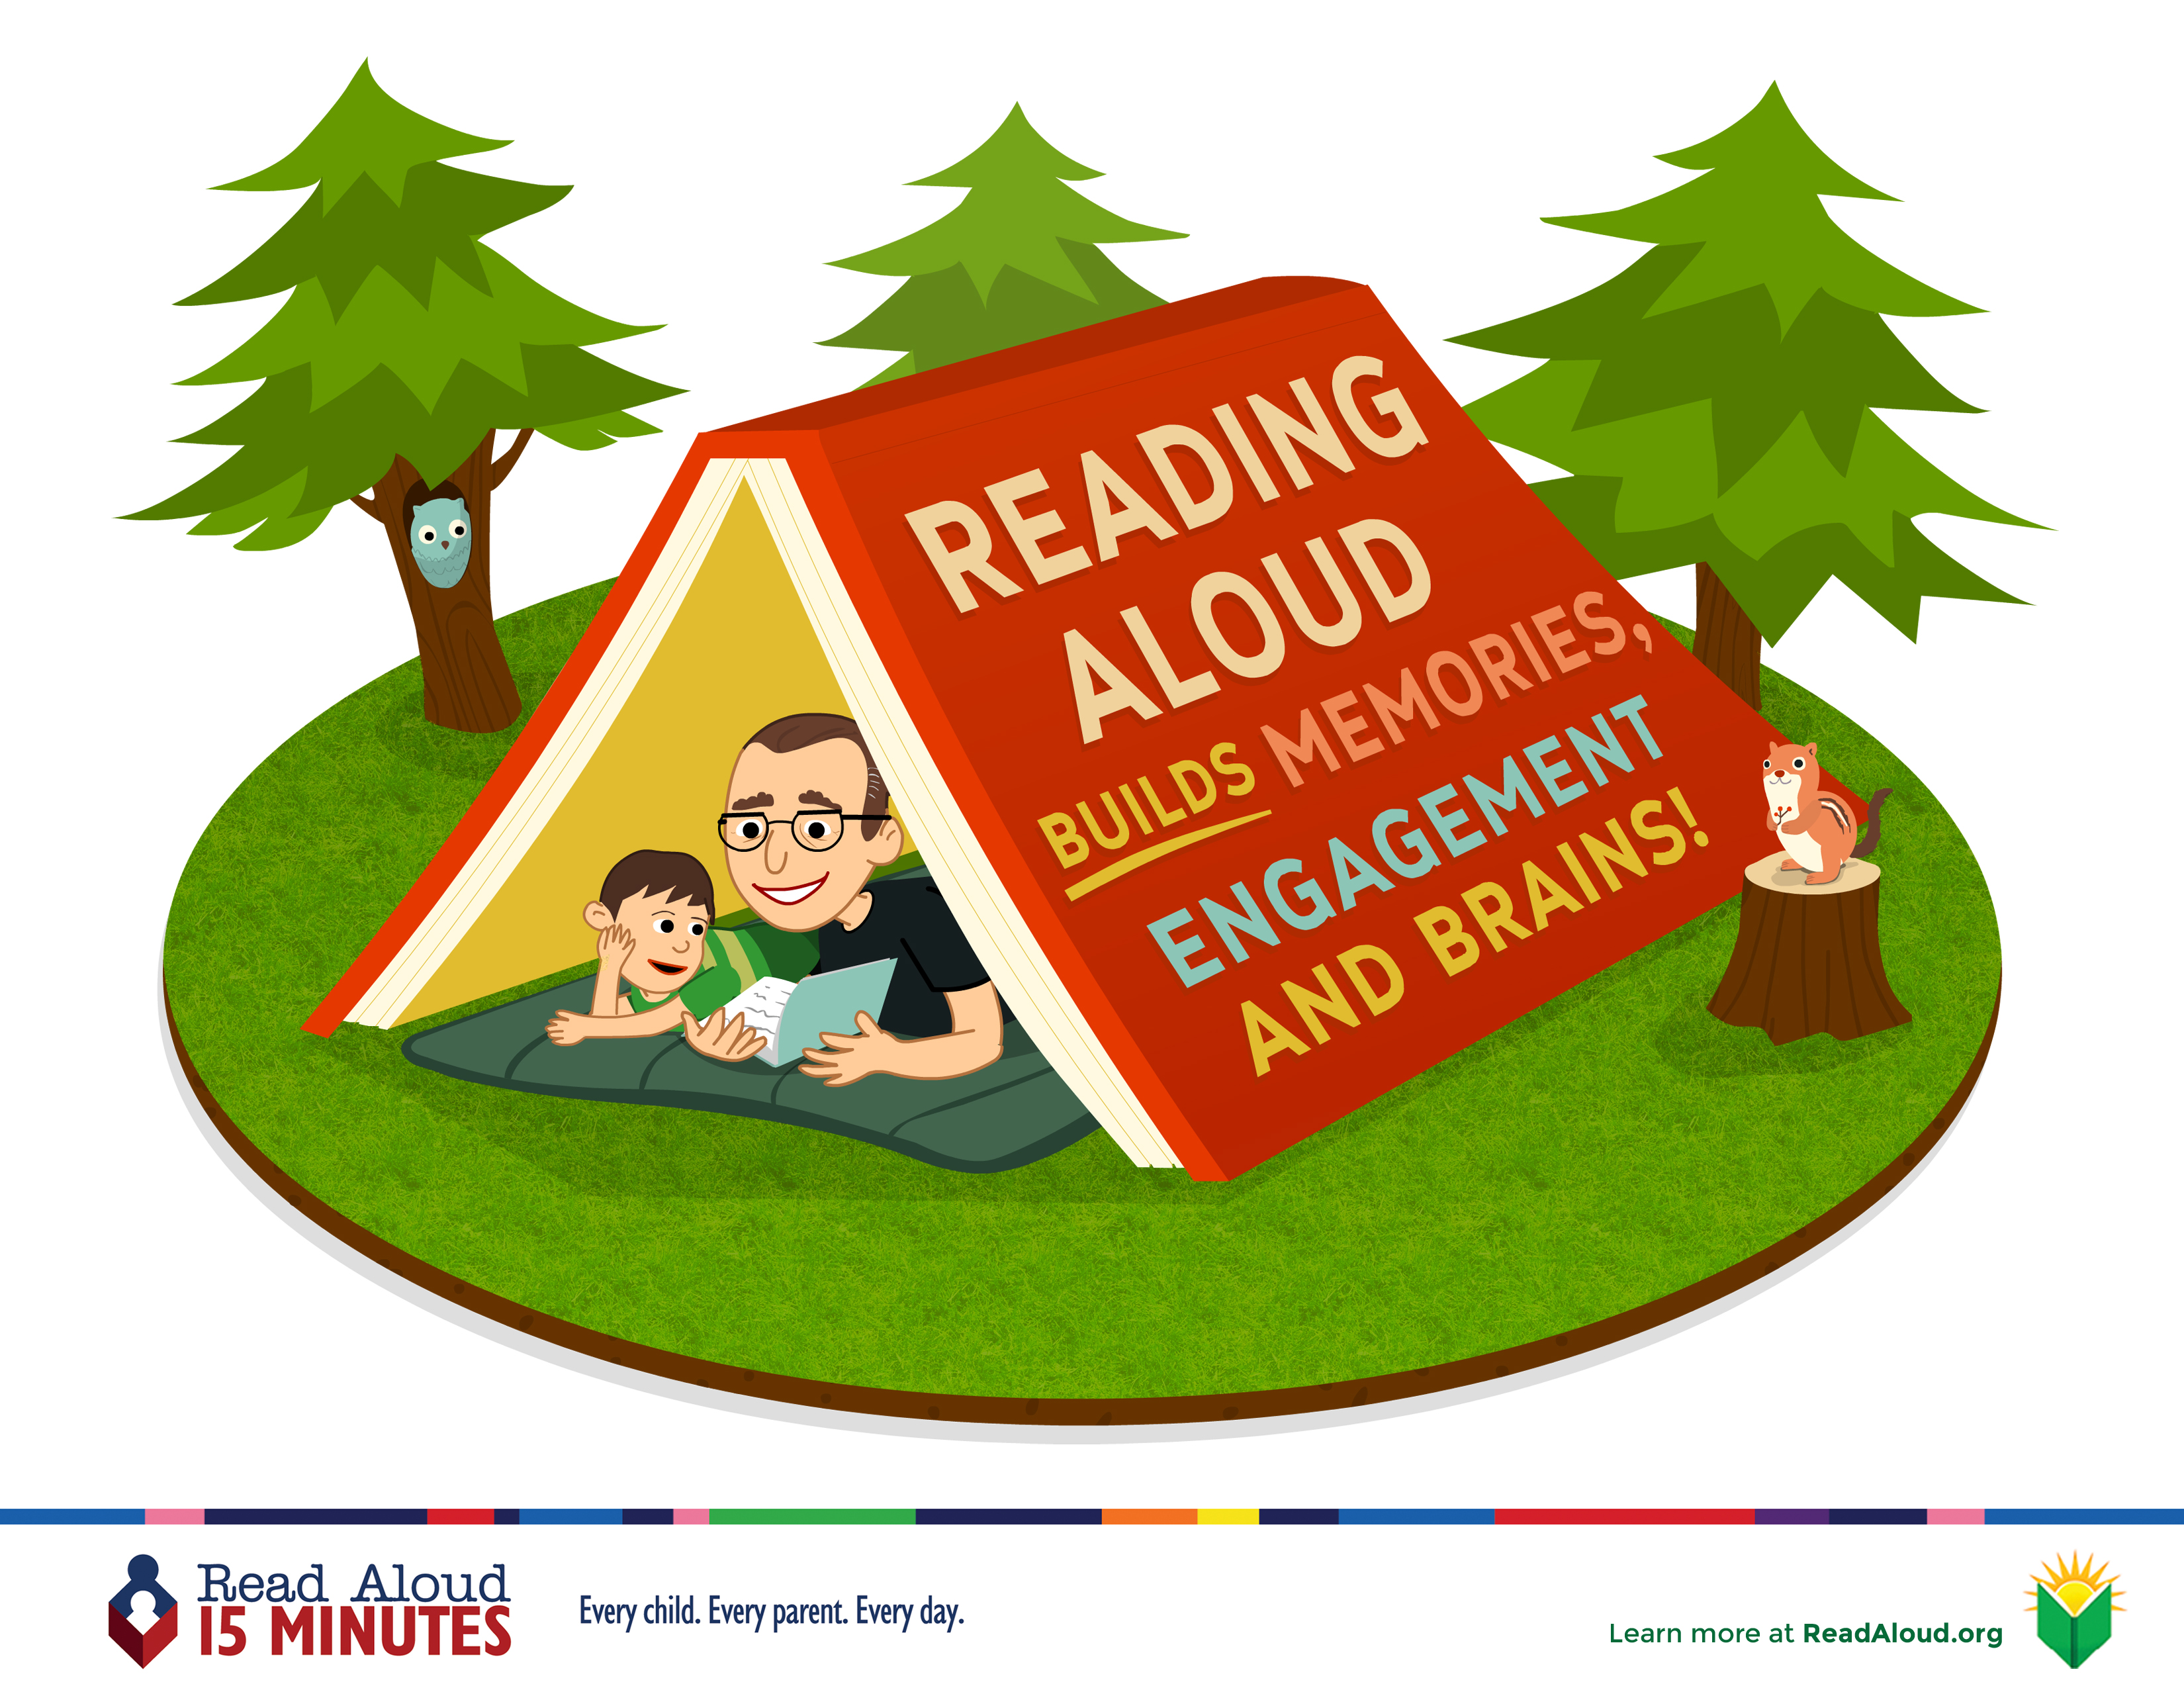 reading aloud to children The more adults read aloud to children, the larger their vocabularies will grow and the more they will know about the world and their place in it.